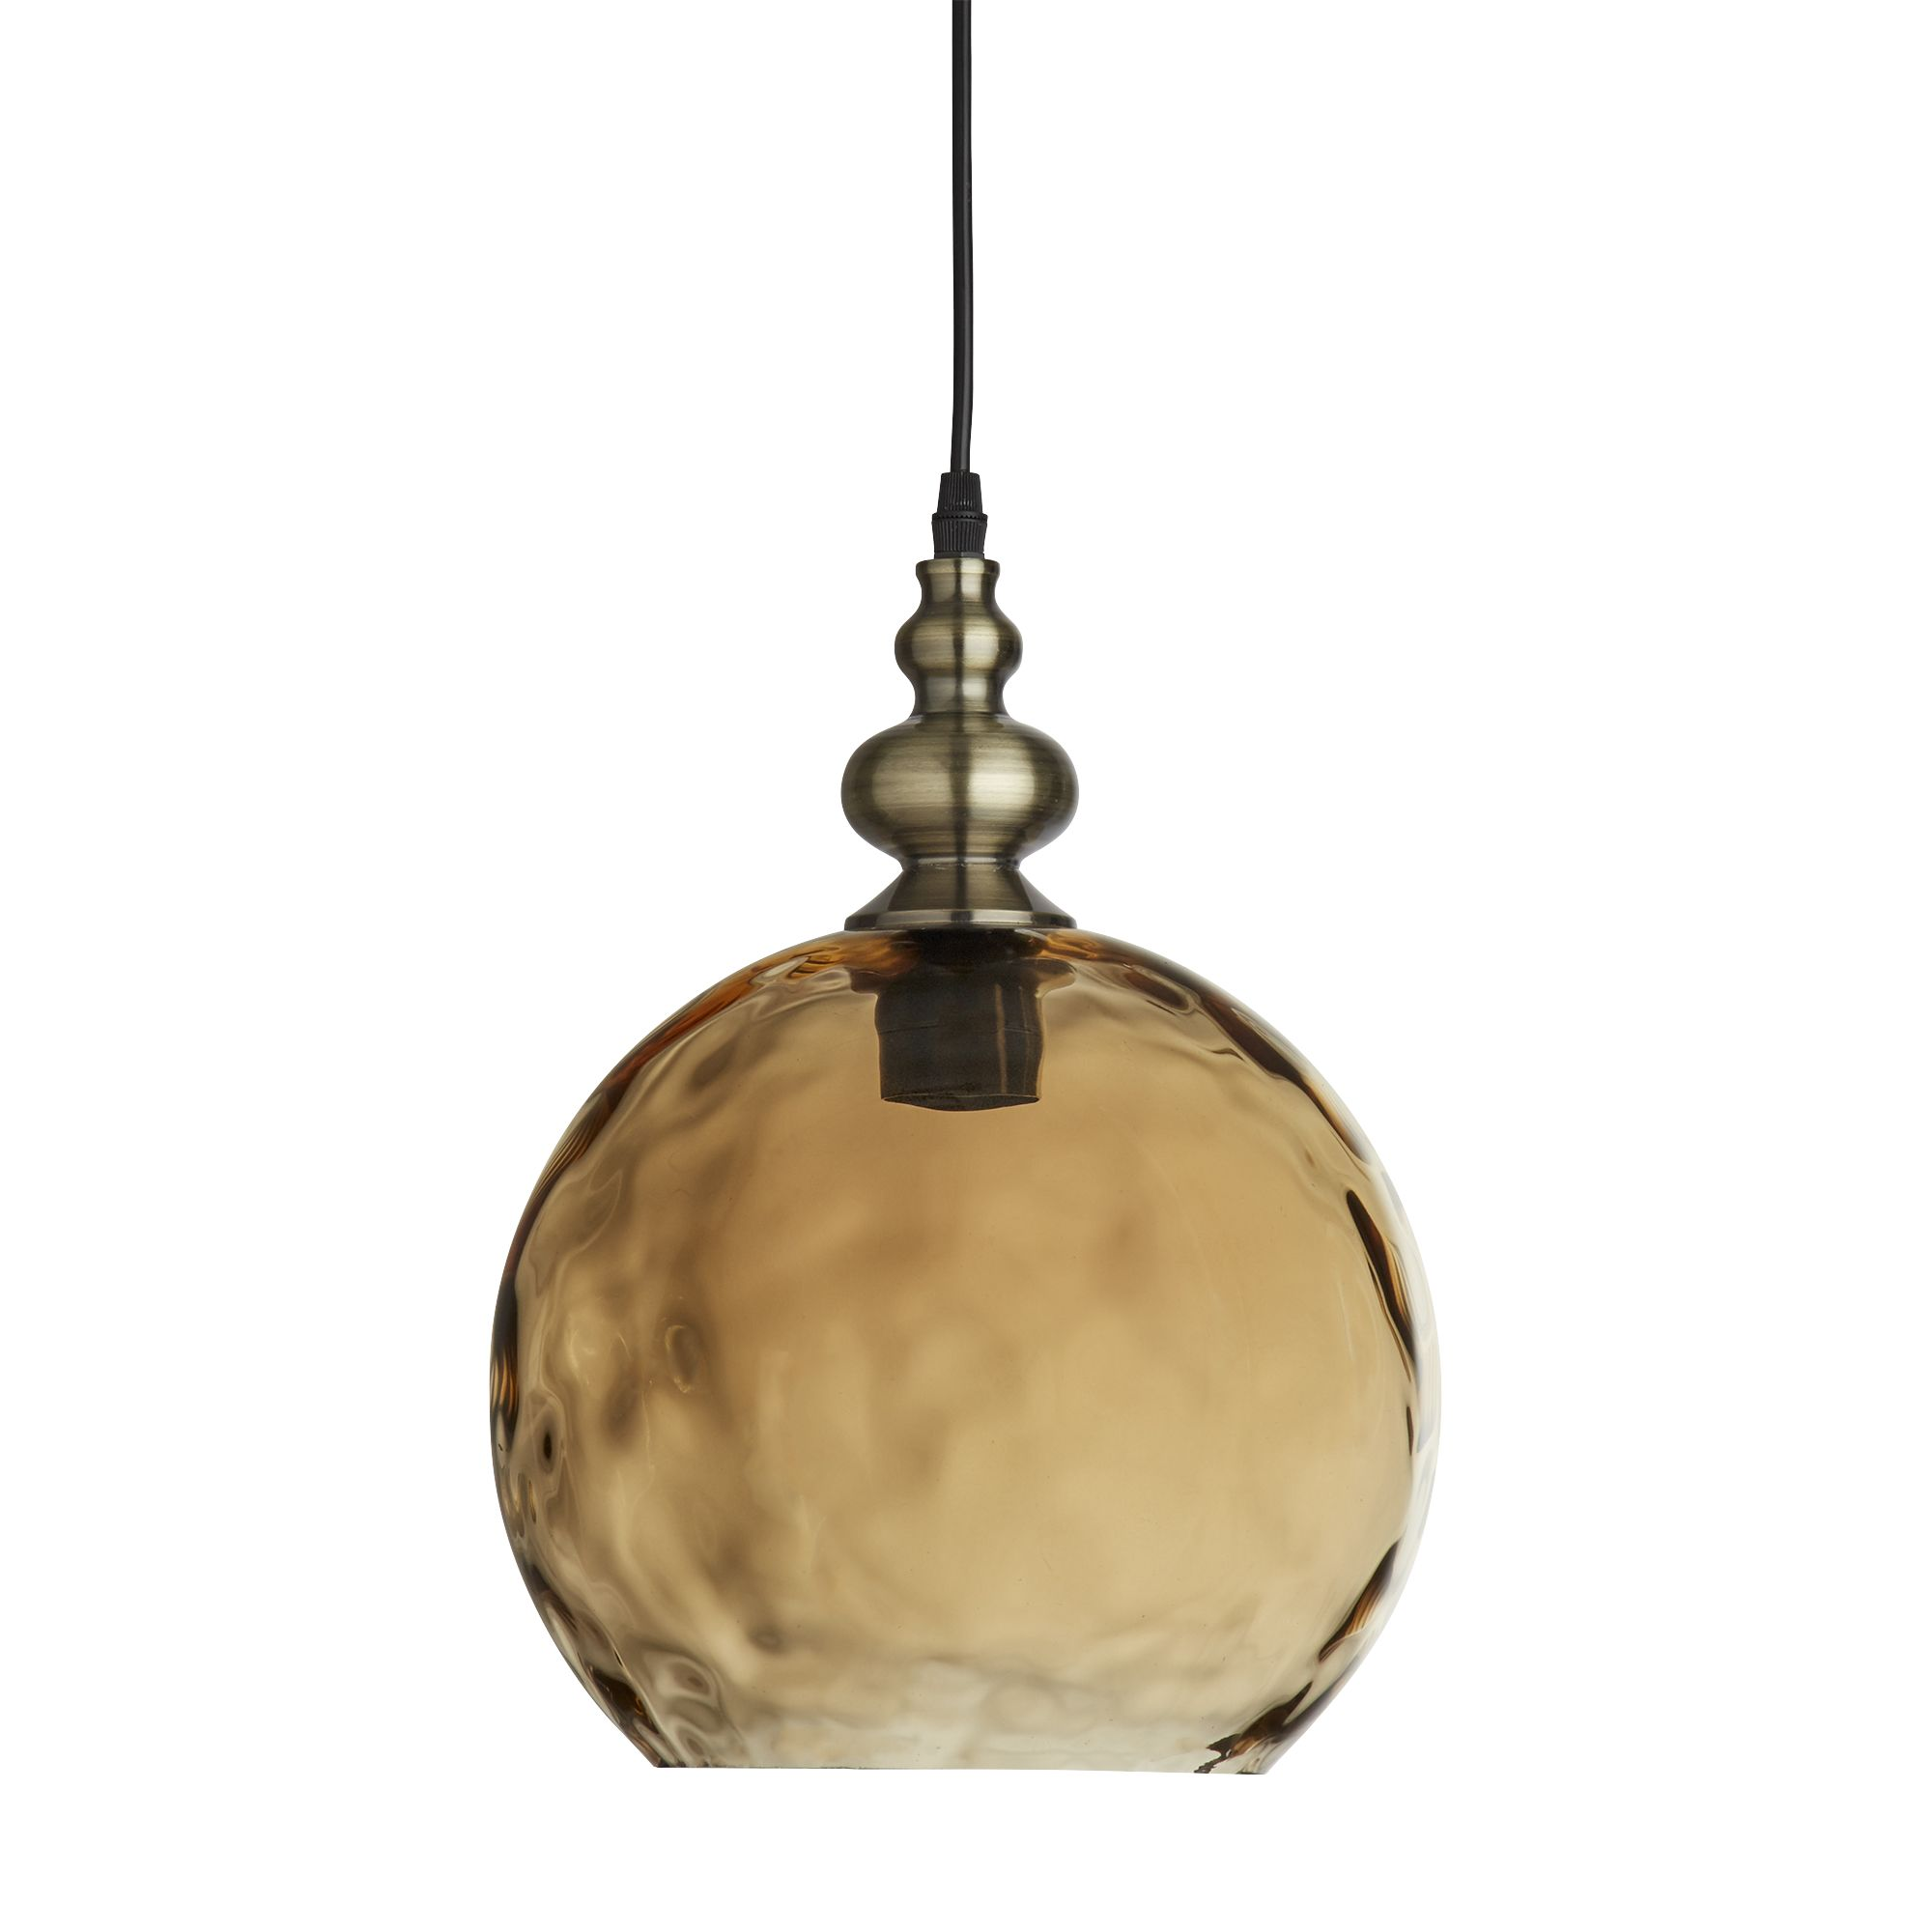 Picture of: Indiana Antique Brass Globe Pendant Light With Dimpled Glass Shade